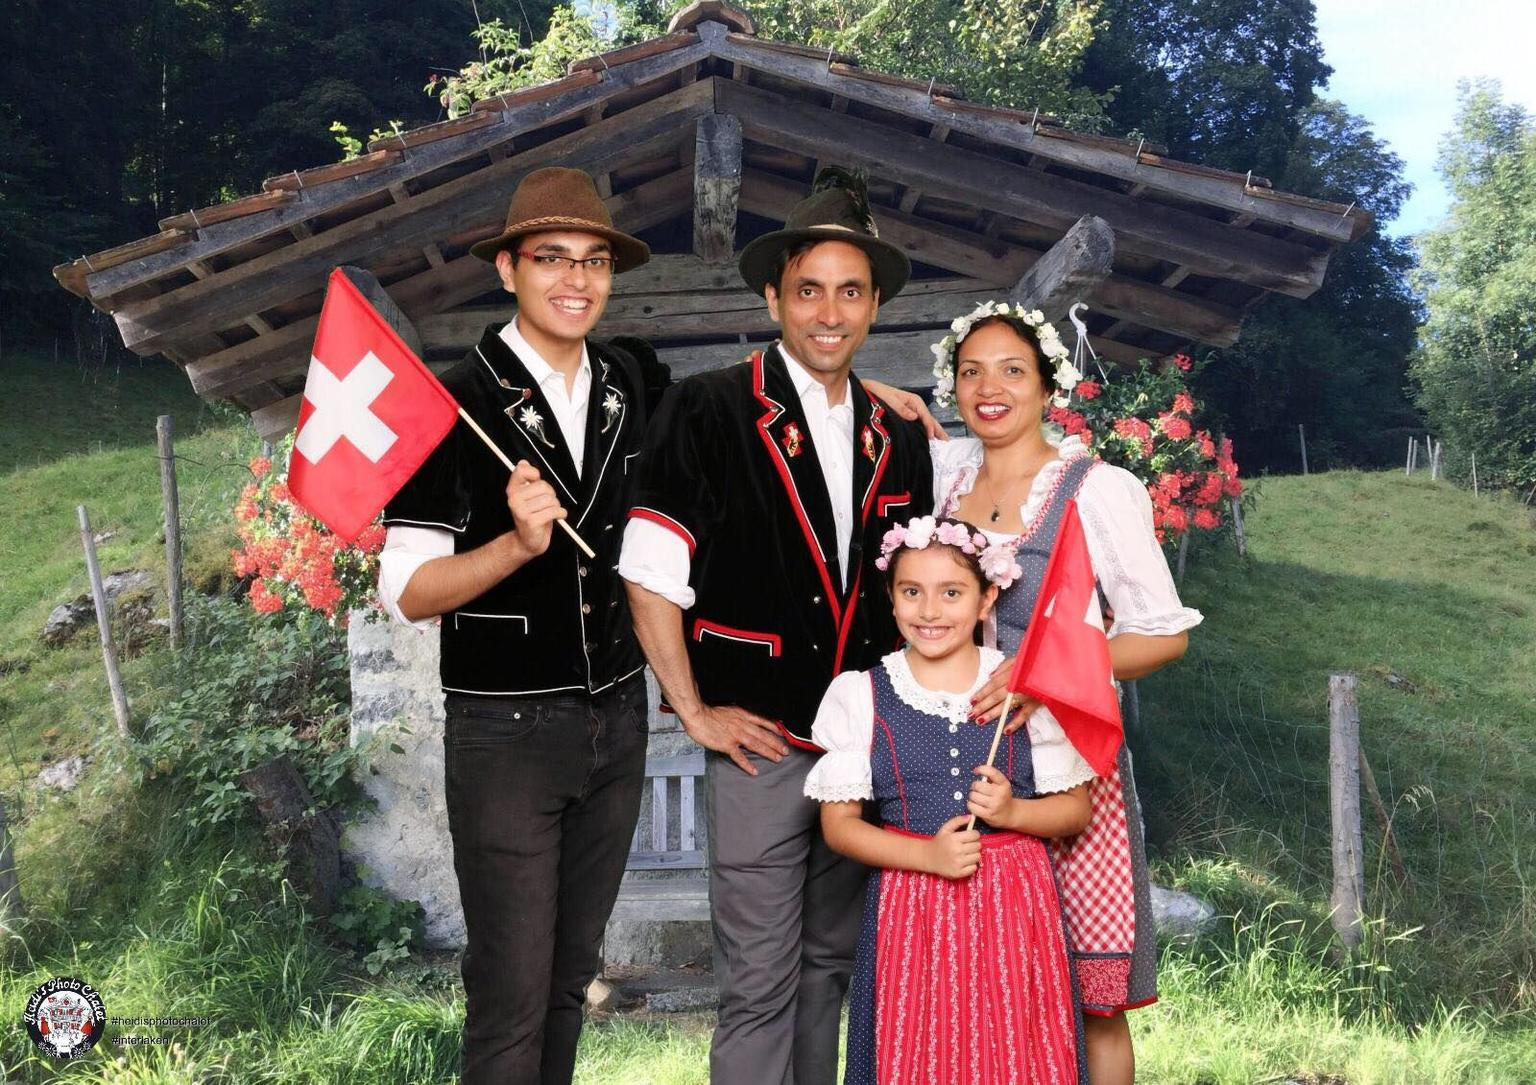 MAIS FOTOS, Swiss Happening - fun and authentic Swiss food, drink & photo experience